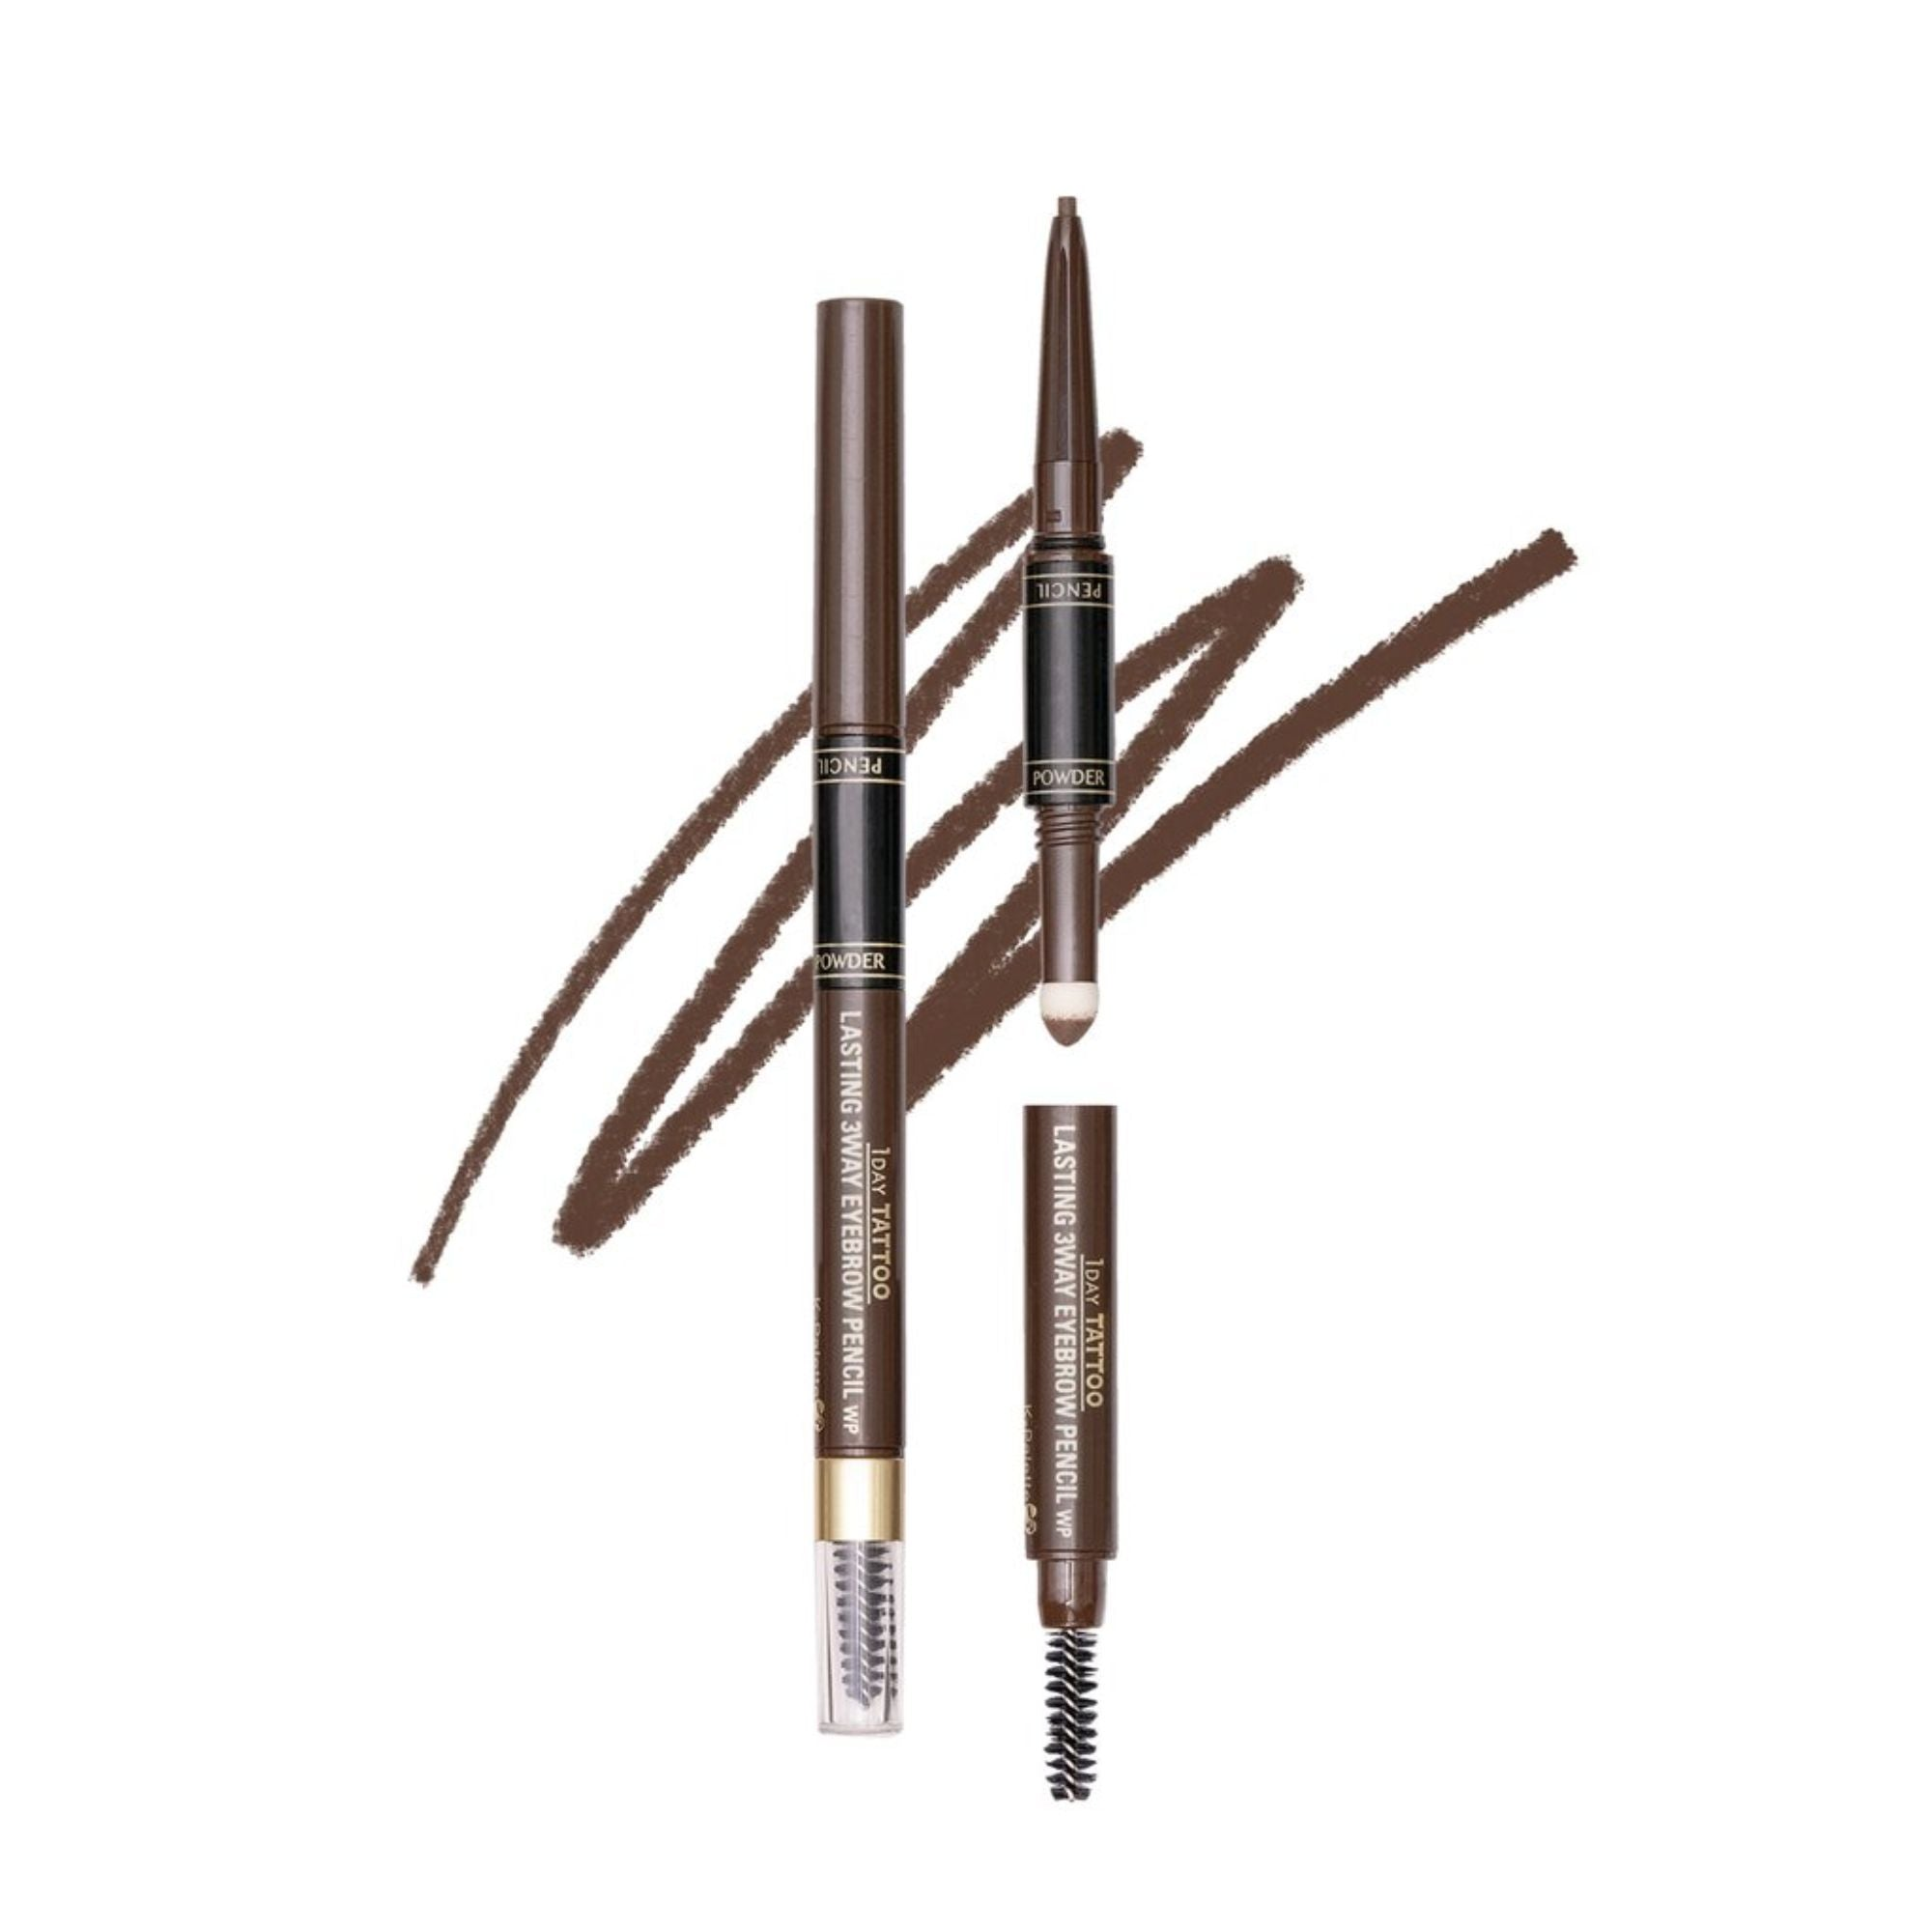 1 Day Tattoo Lasting 3-Way Eyebrow Pencil 24H